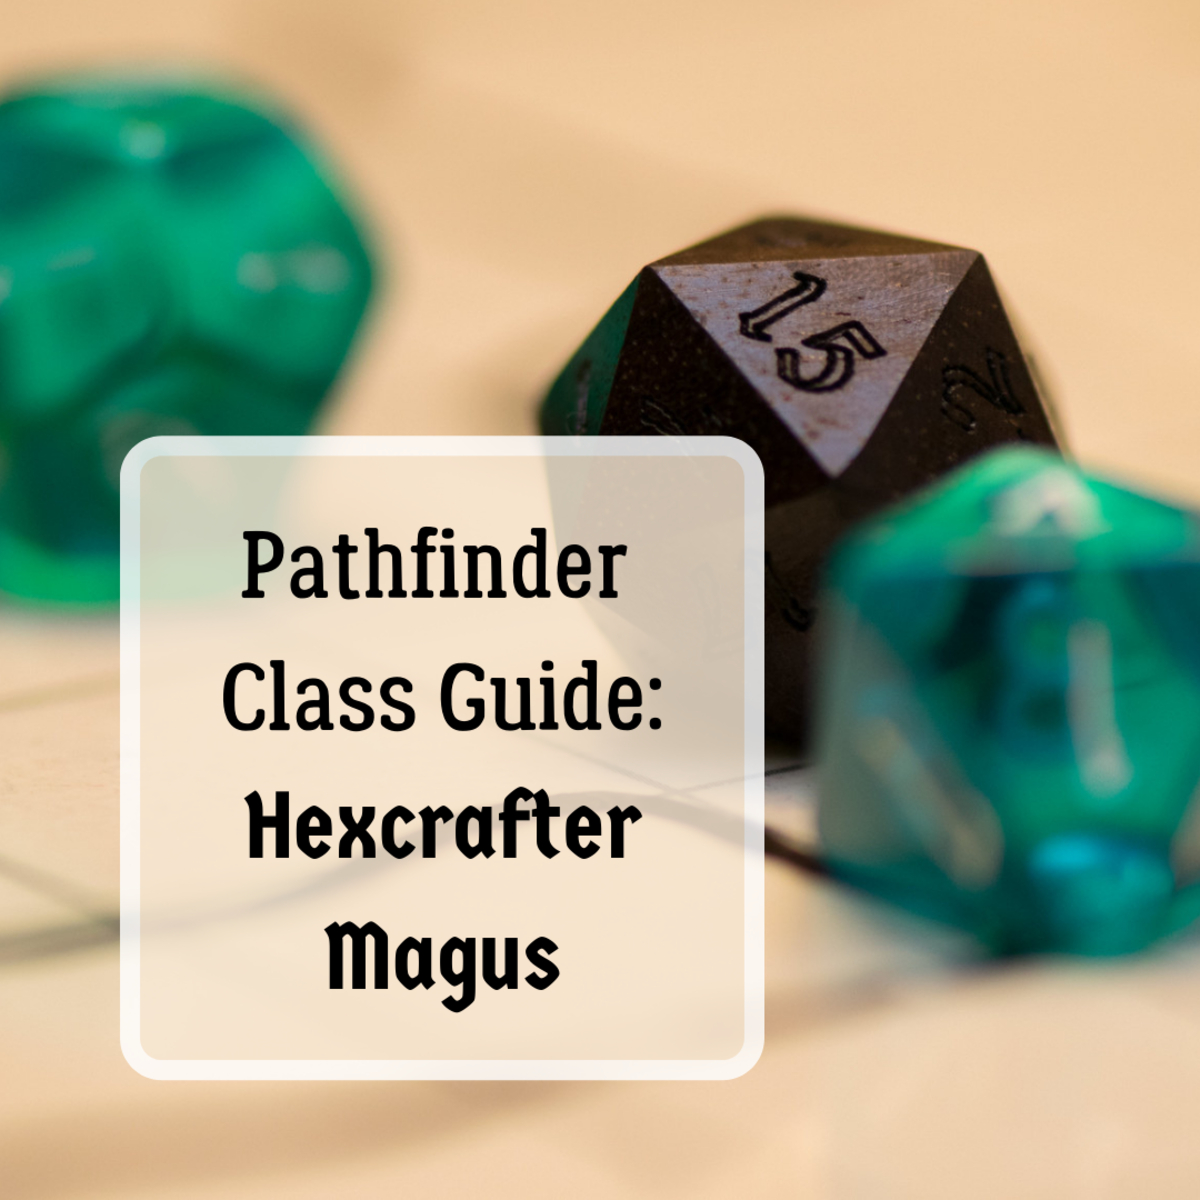 A Guide to the Hexcrafter Magus (Pathfinder)